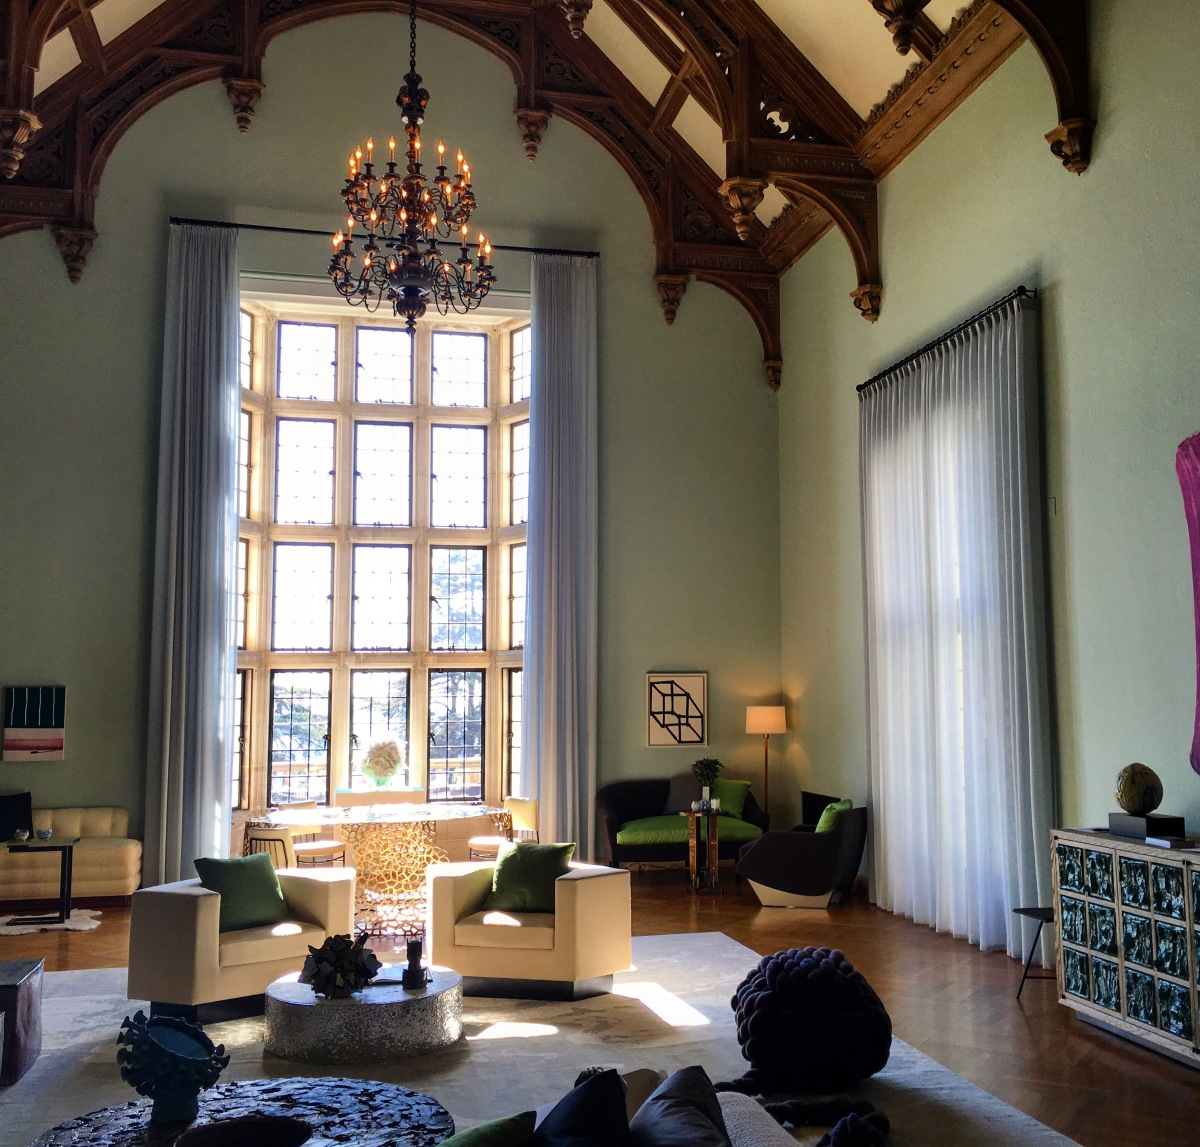 Design inspiration at the greystone mansion lalascoop for The greystone